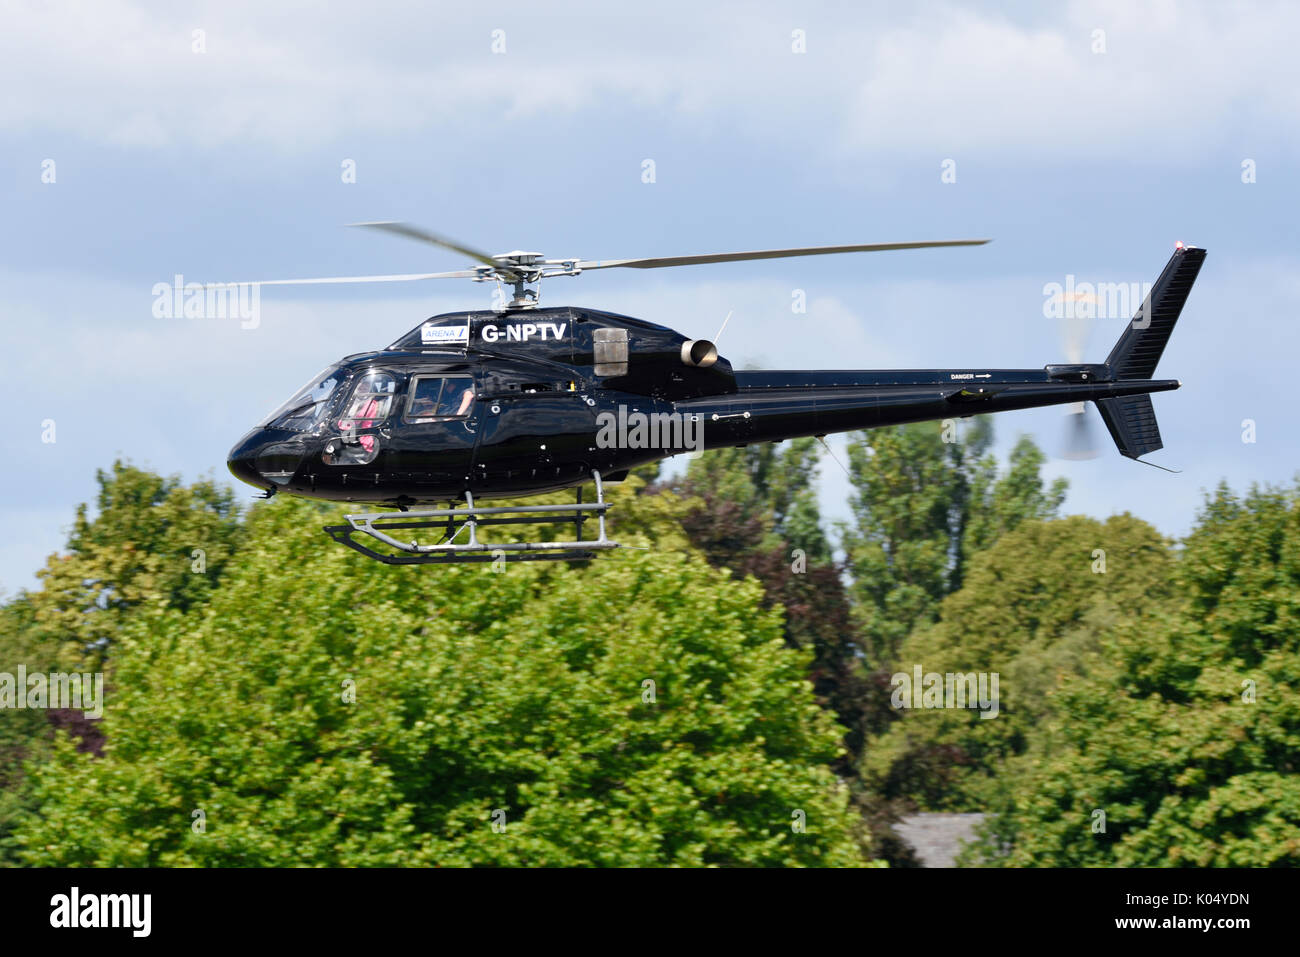 eurocopter-as355-np-ecureuil-ii-squirrel-helicopter-g-nptv-owned-by-K04YDN.jpg